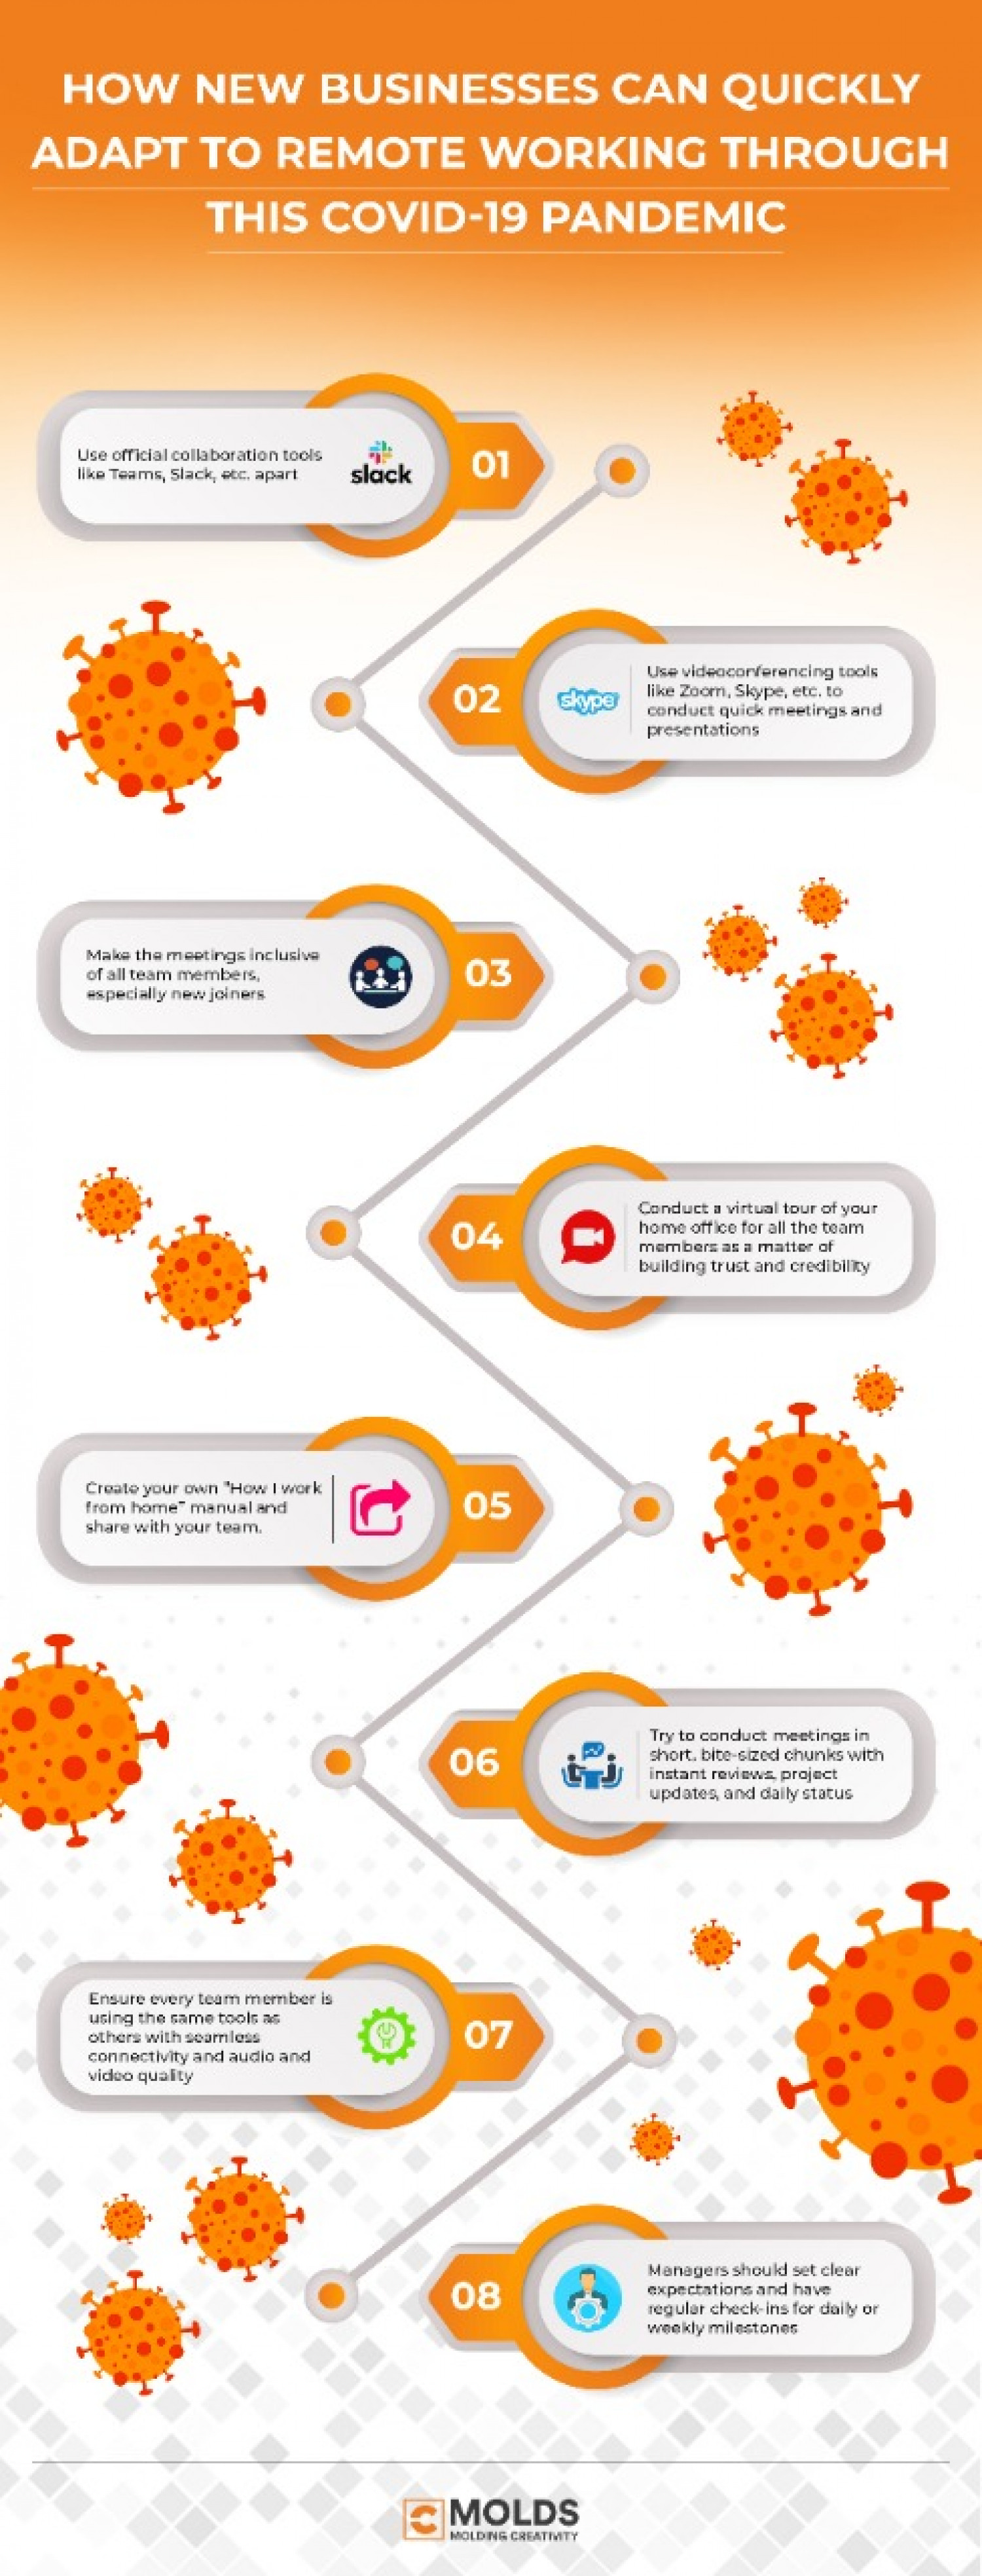 How New Business Can Quickly Adapt To Remote Working Through This COVID-19 Pandemic Infographic